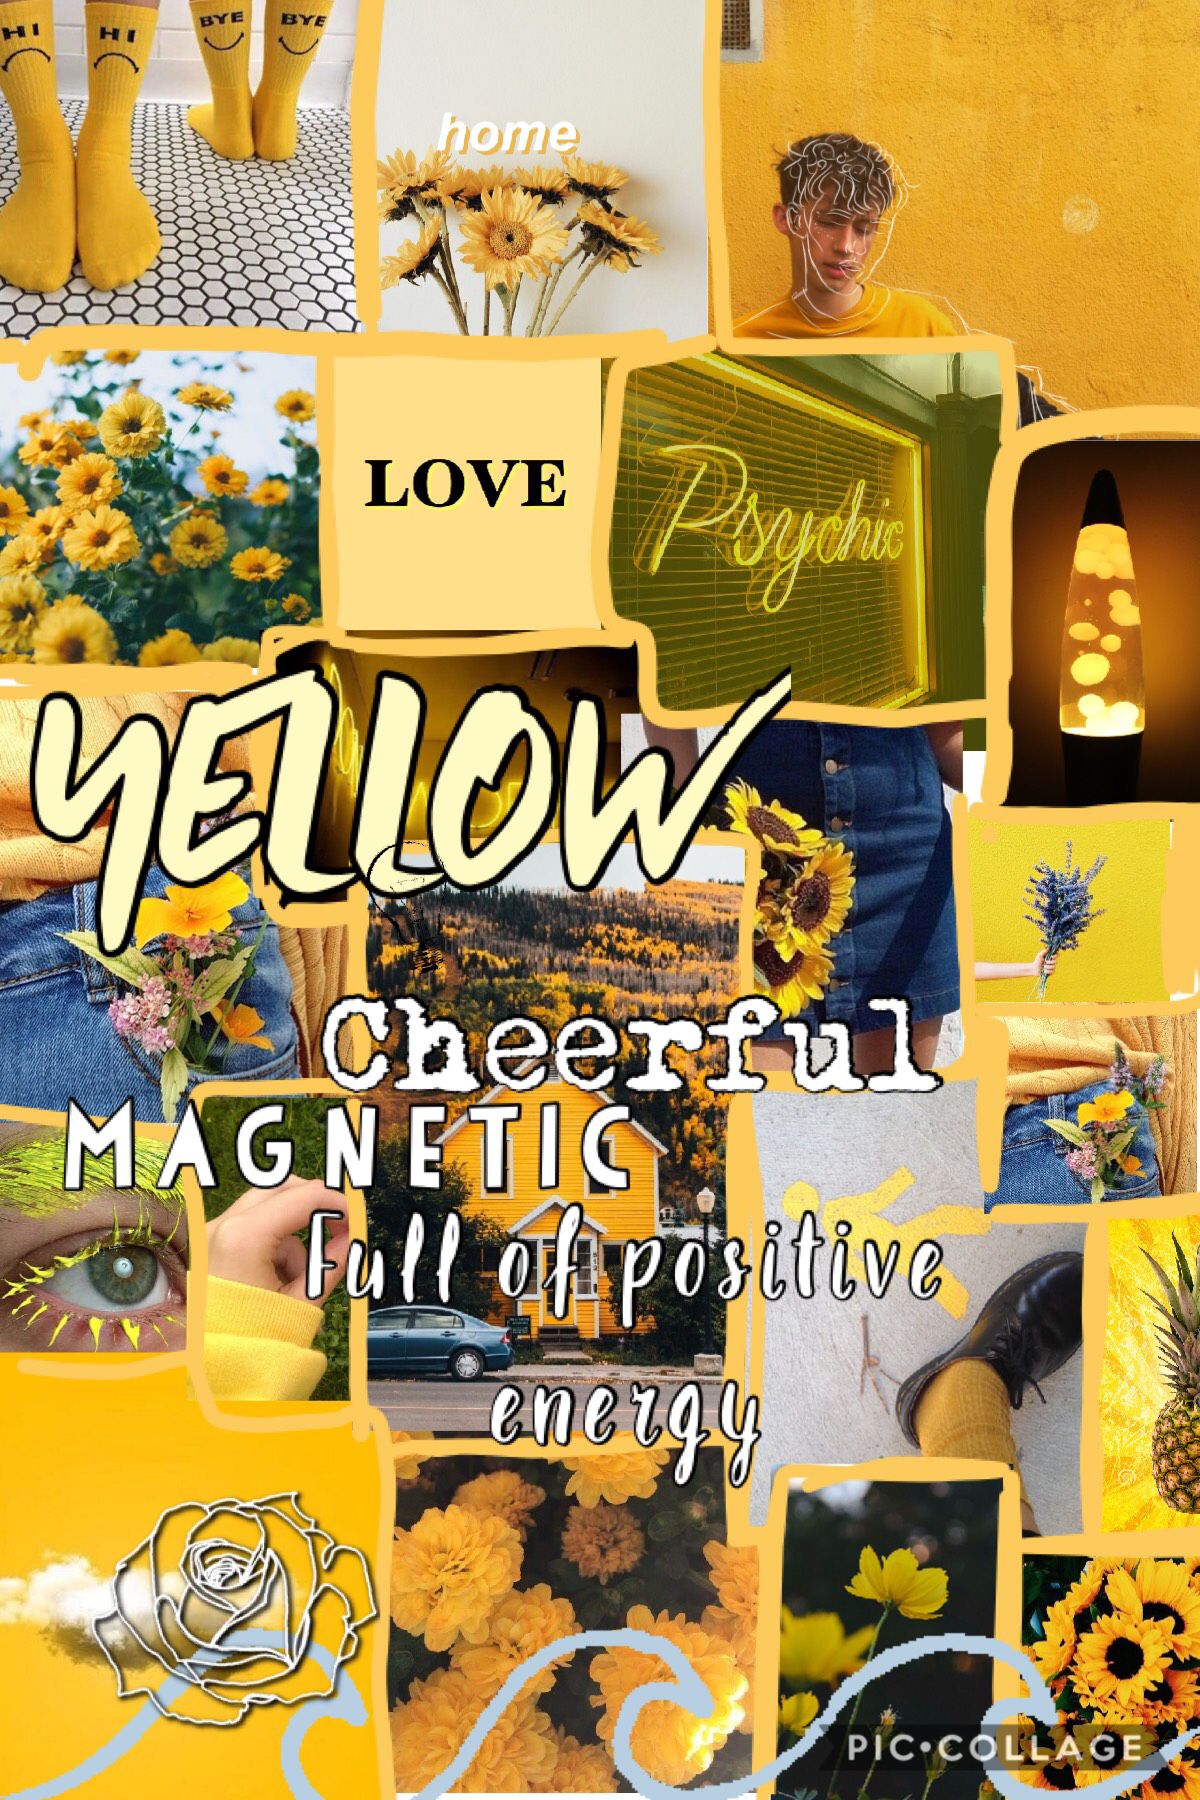 YELLOW......  cause who doesn't love that colour ? Made this with my best friend ania when we were having a sleepover together  Who also has an account @turtles21289 go follow her 😇